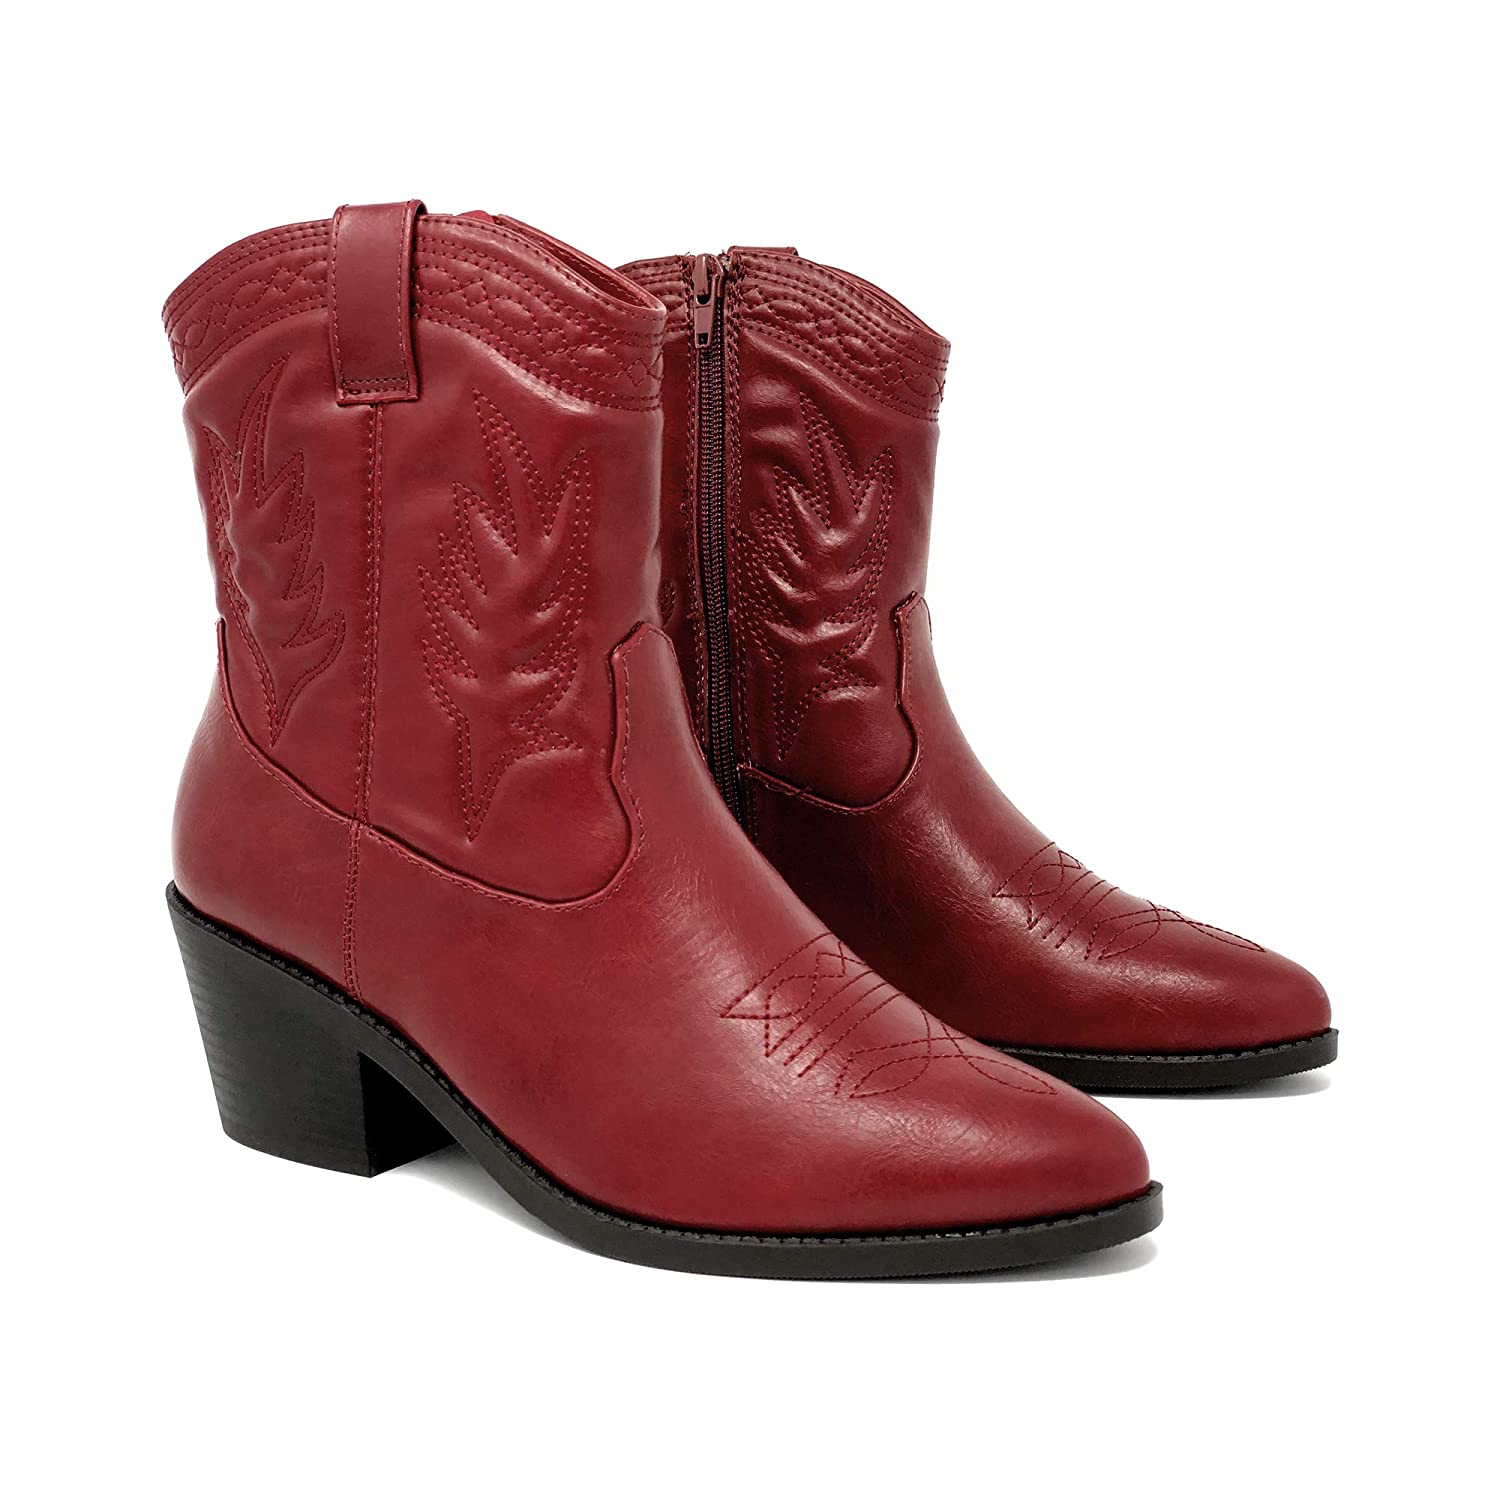 4671c724f2539 SODA Topshoeave Picotee Women Western Cowboy Cowgirl Stitched Ankle Boots